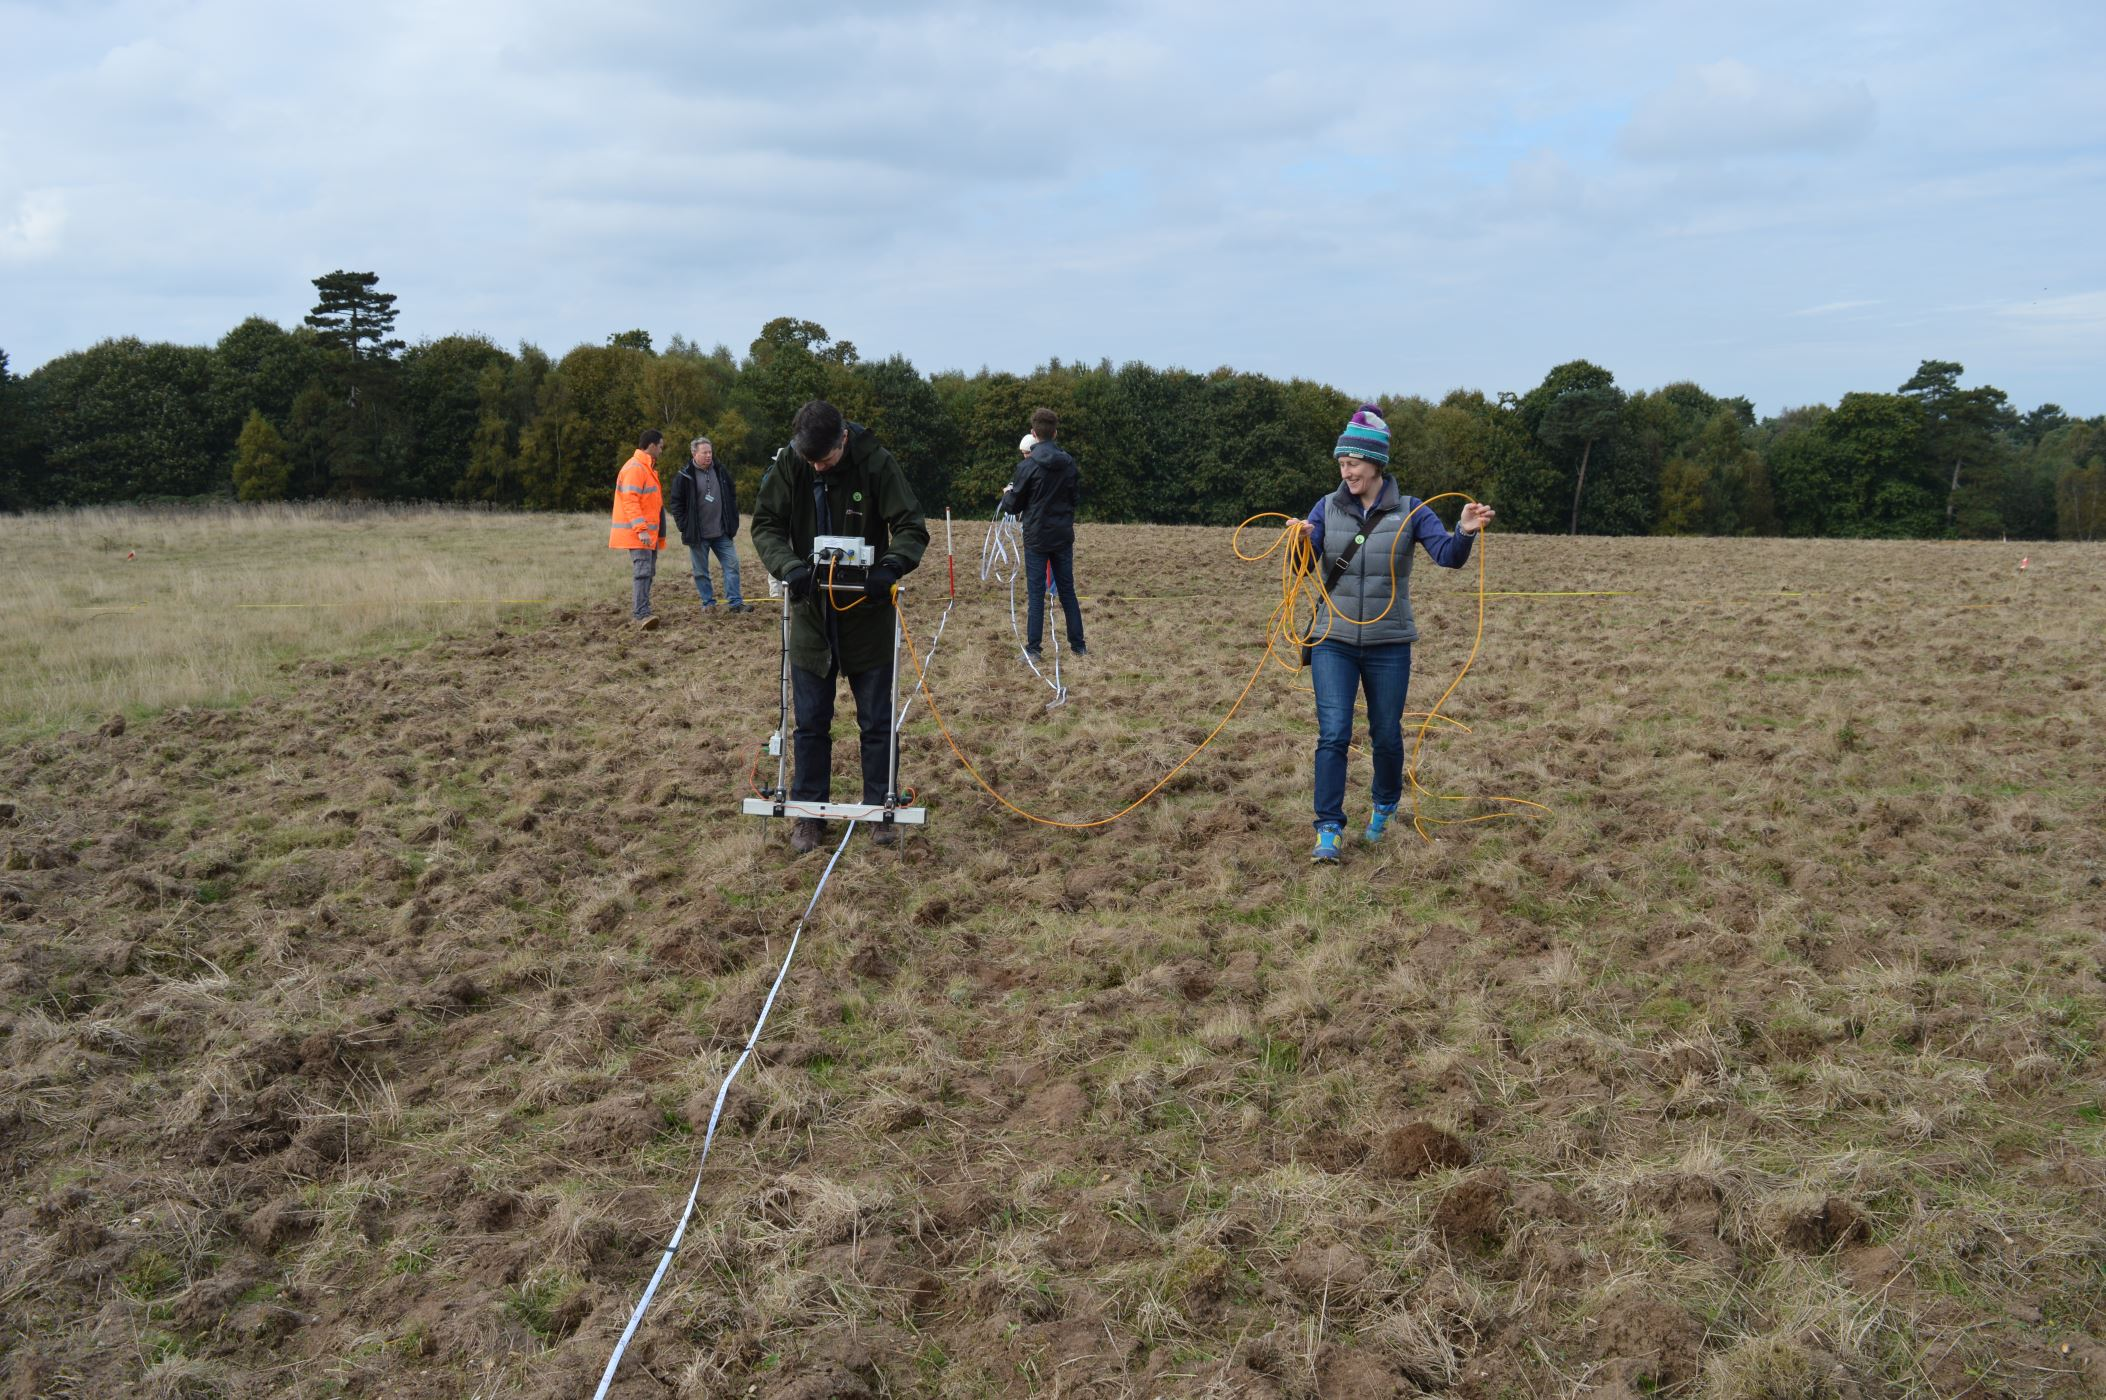 Volunteers carrying out the earth resistivity survey at Sutton Hoo